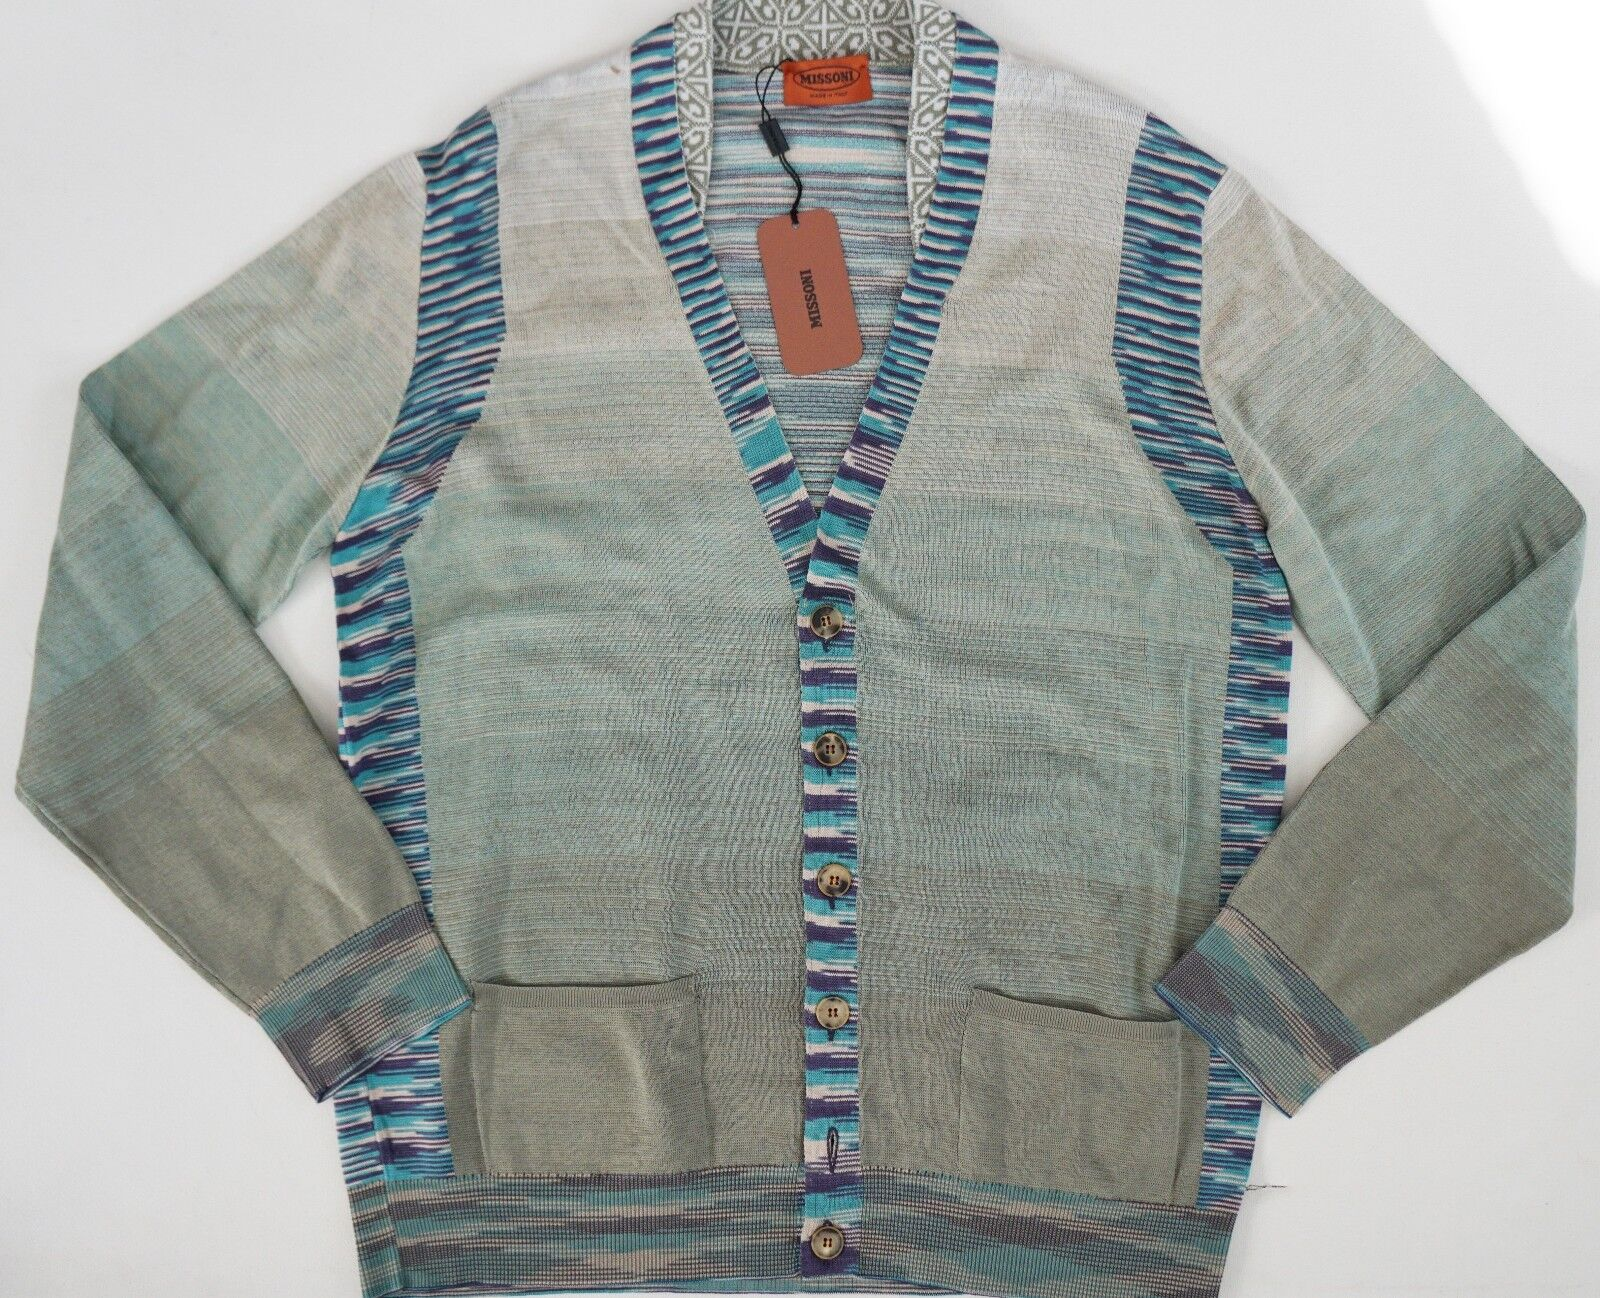 540 Authentic MISSONI Orange LABEL 100% COTTON Knitted Cardigan Sweater IT-52 L